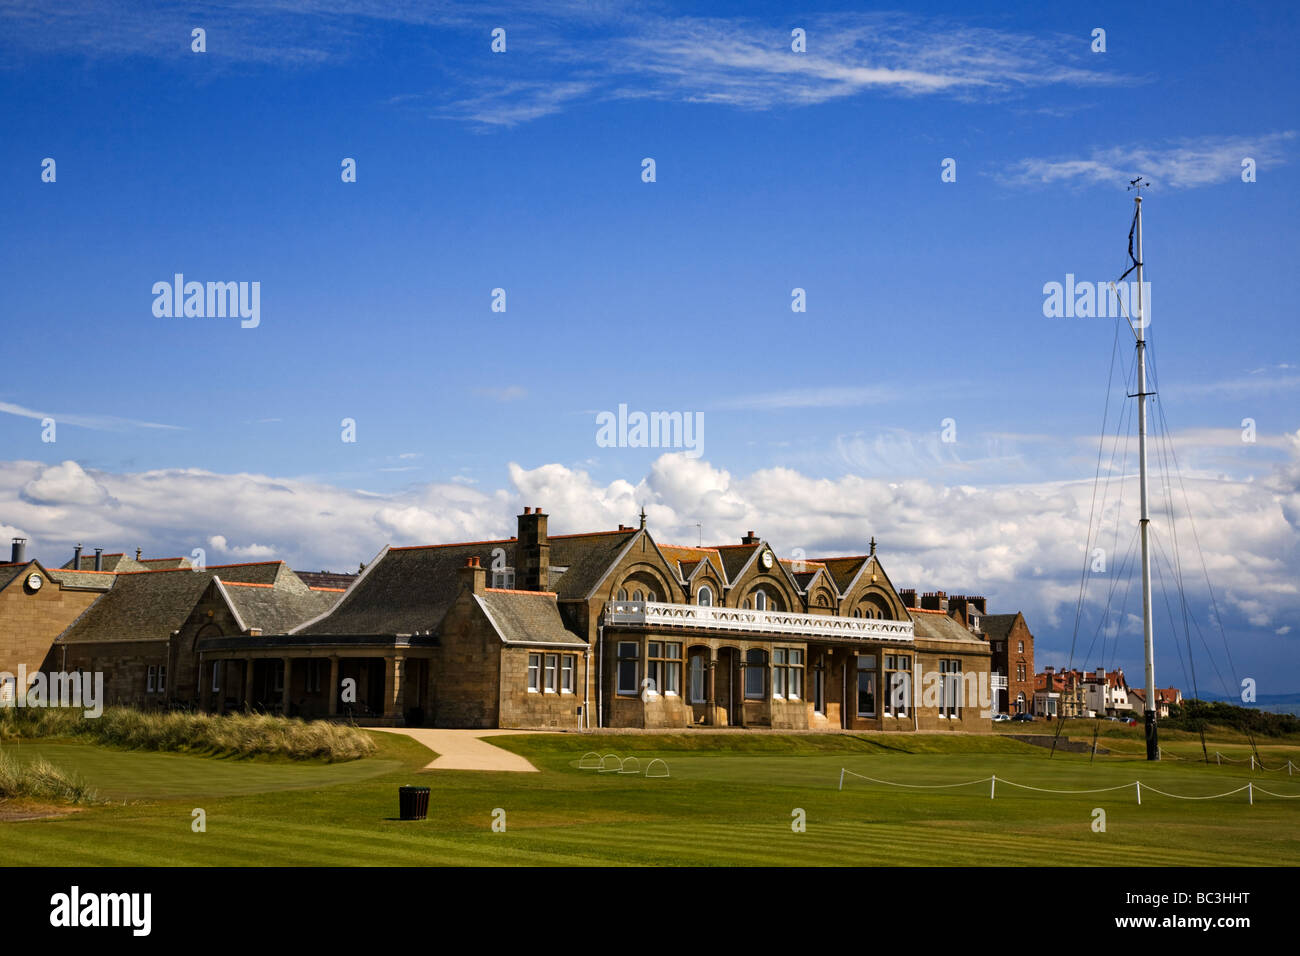 Royal Troon golf course and clubhouse, South Ayrshire, Scotland. - Stock Image